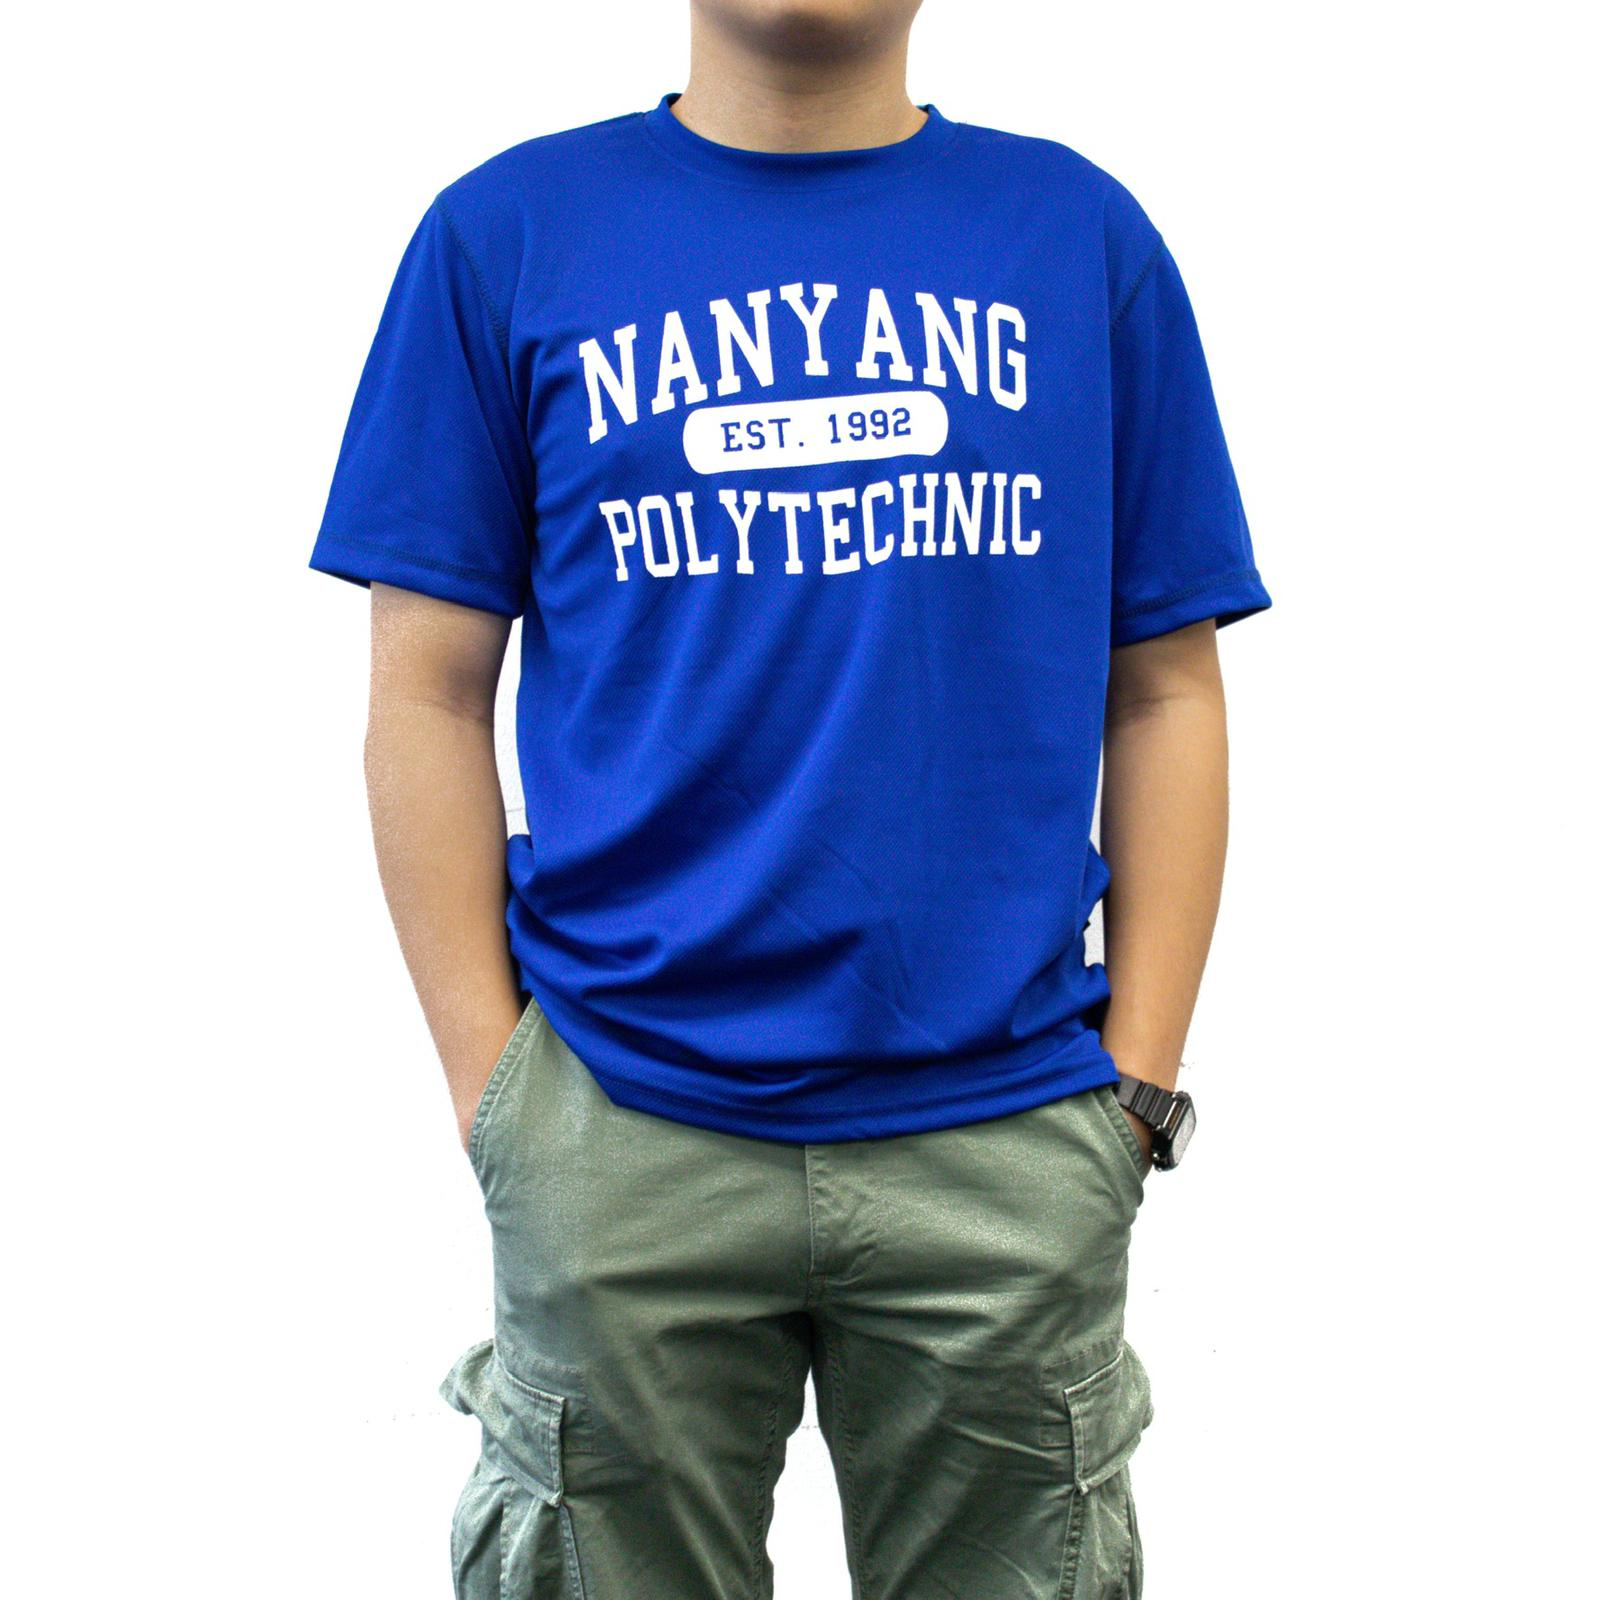 NYP DRI-FIT TEE ROYAL BLUE WITH WHITE FONTS